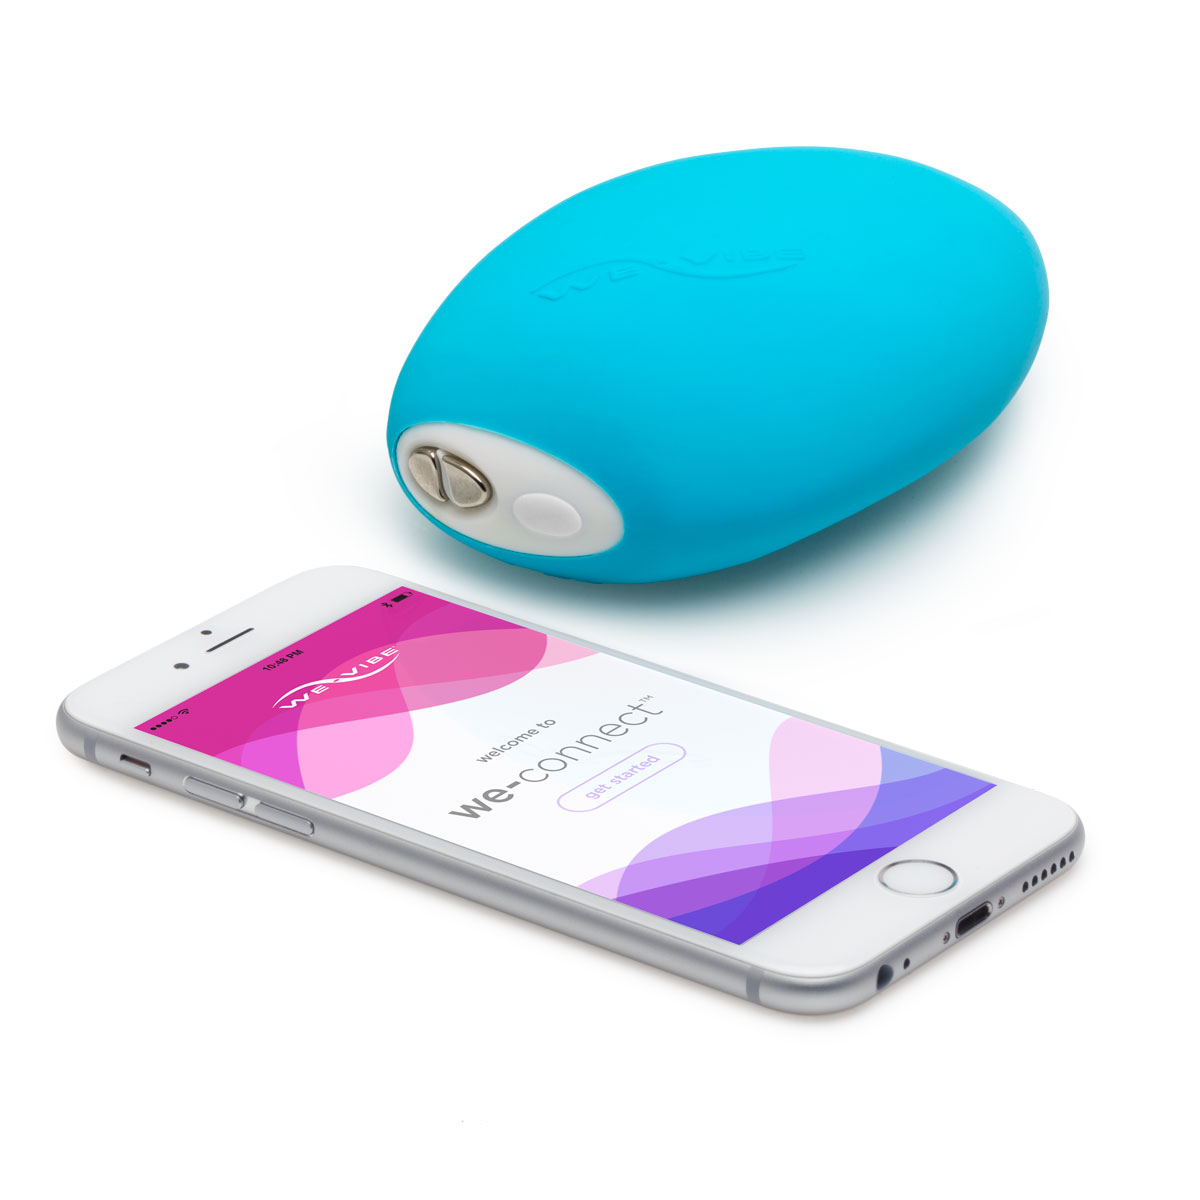 we-vibe-wish-luxury-vibrator-phone.jpg